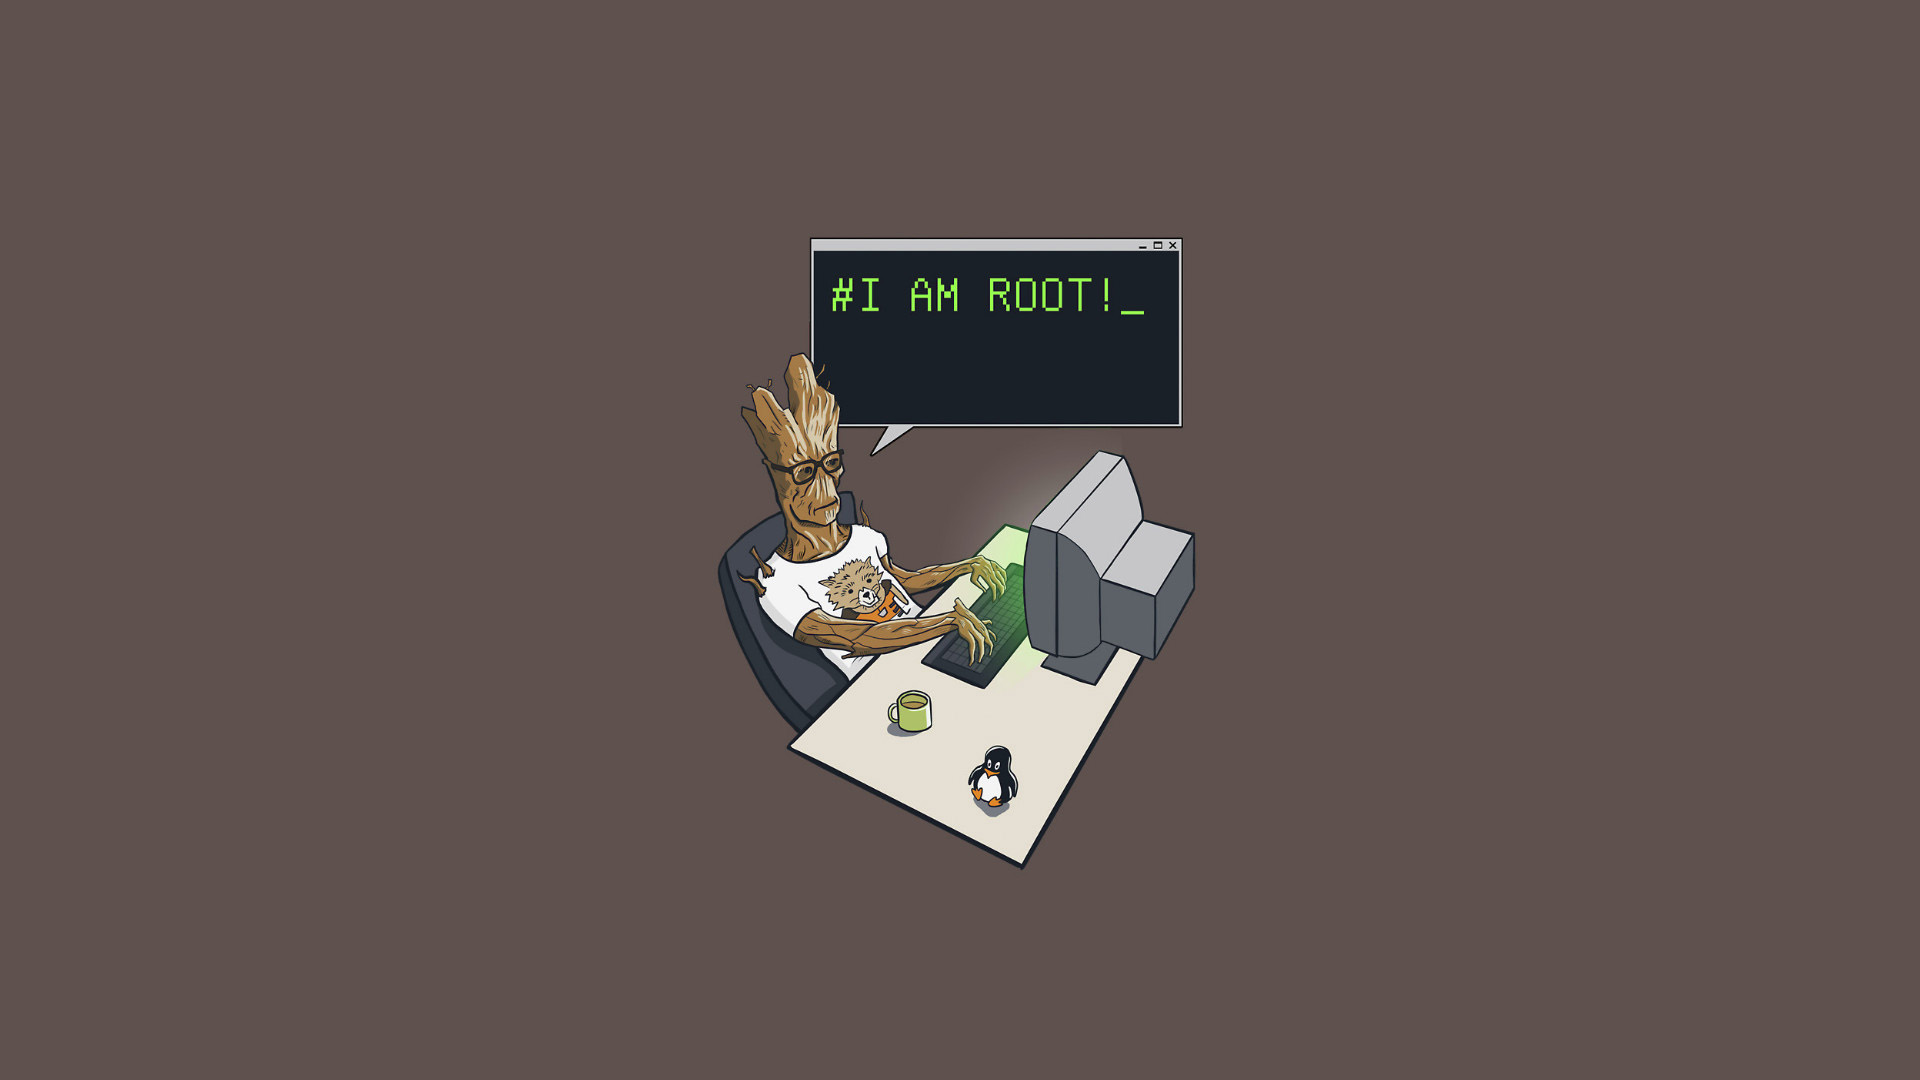 groot i am root hd computer 4k wallpapers images